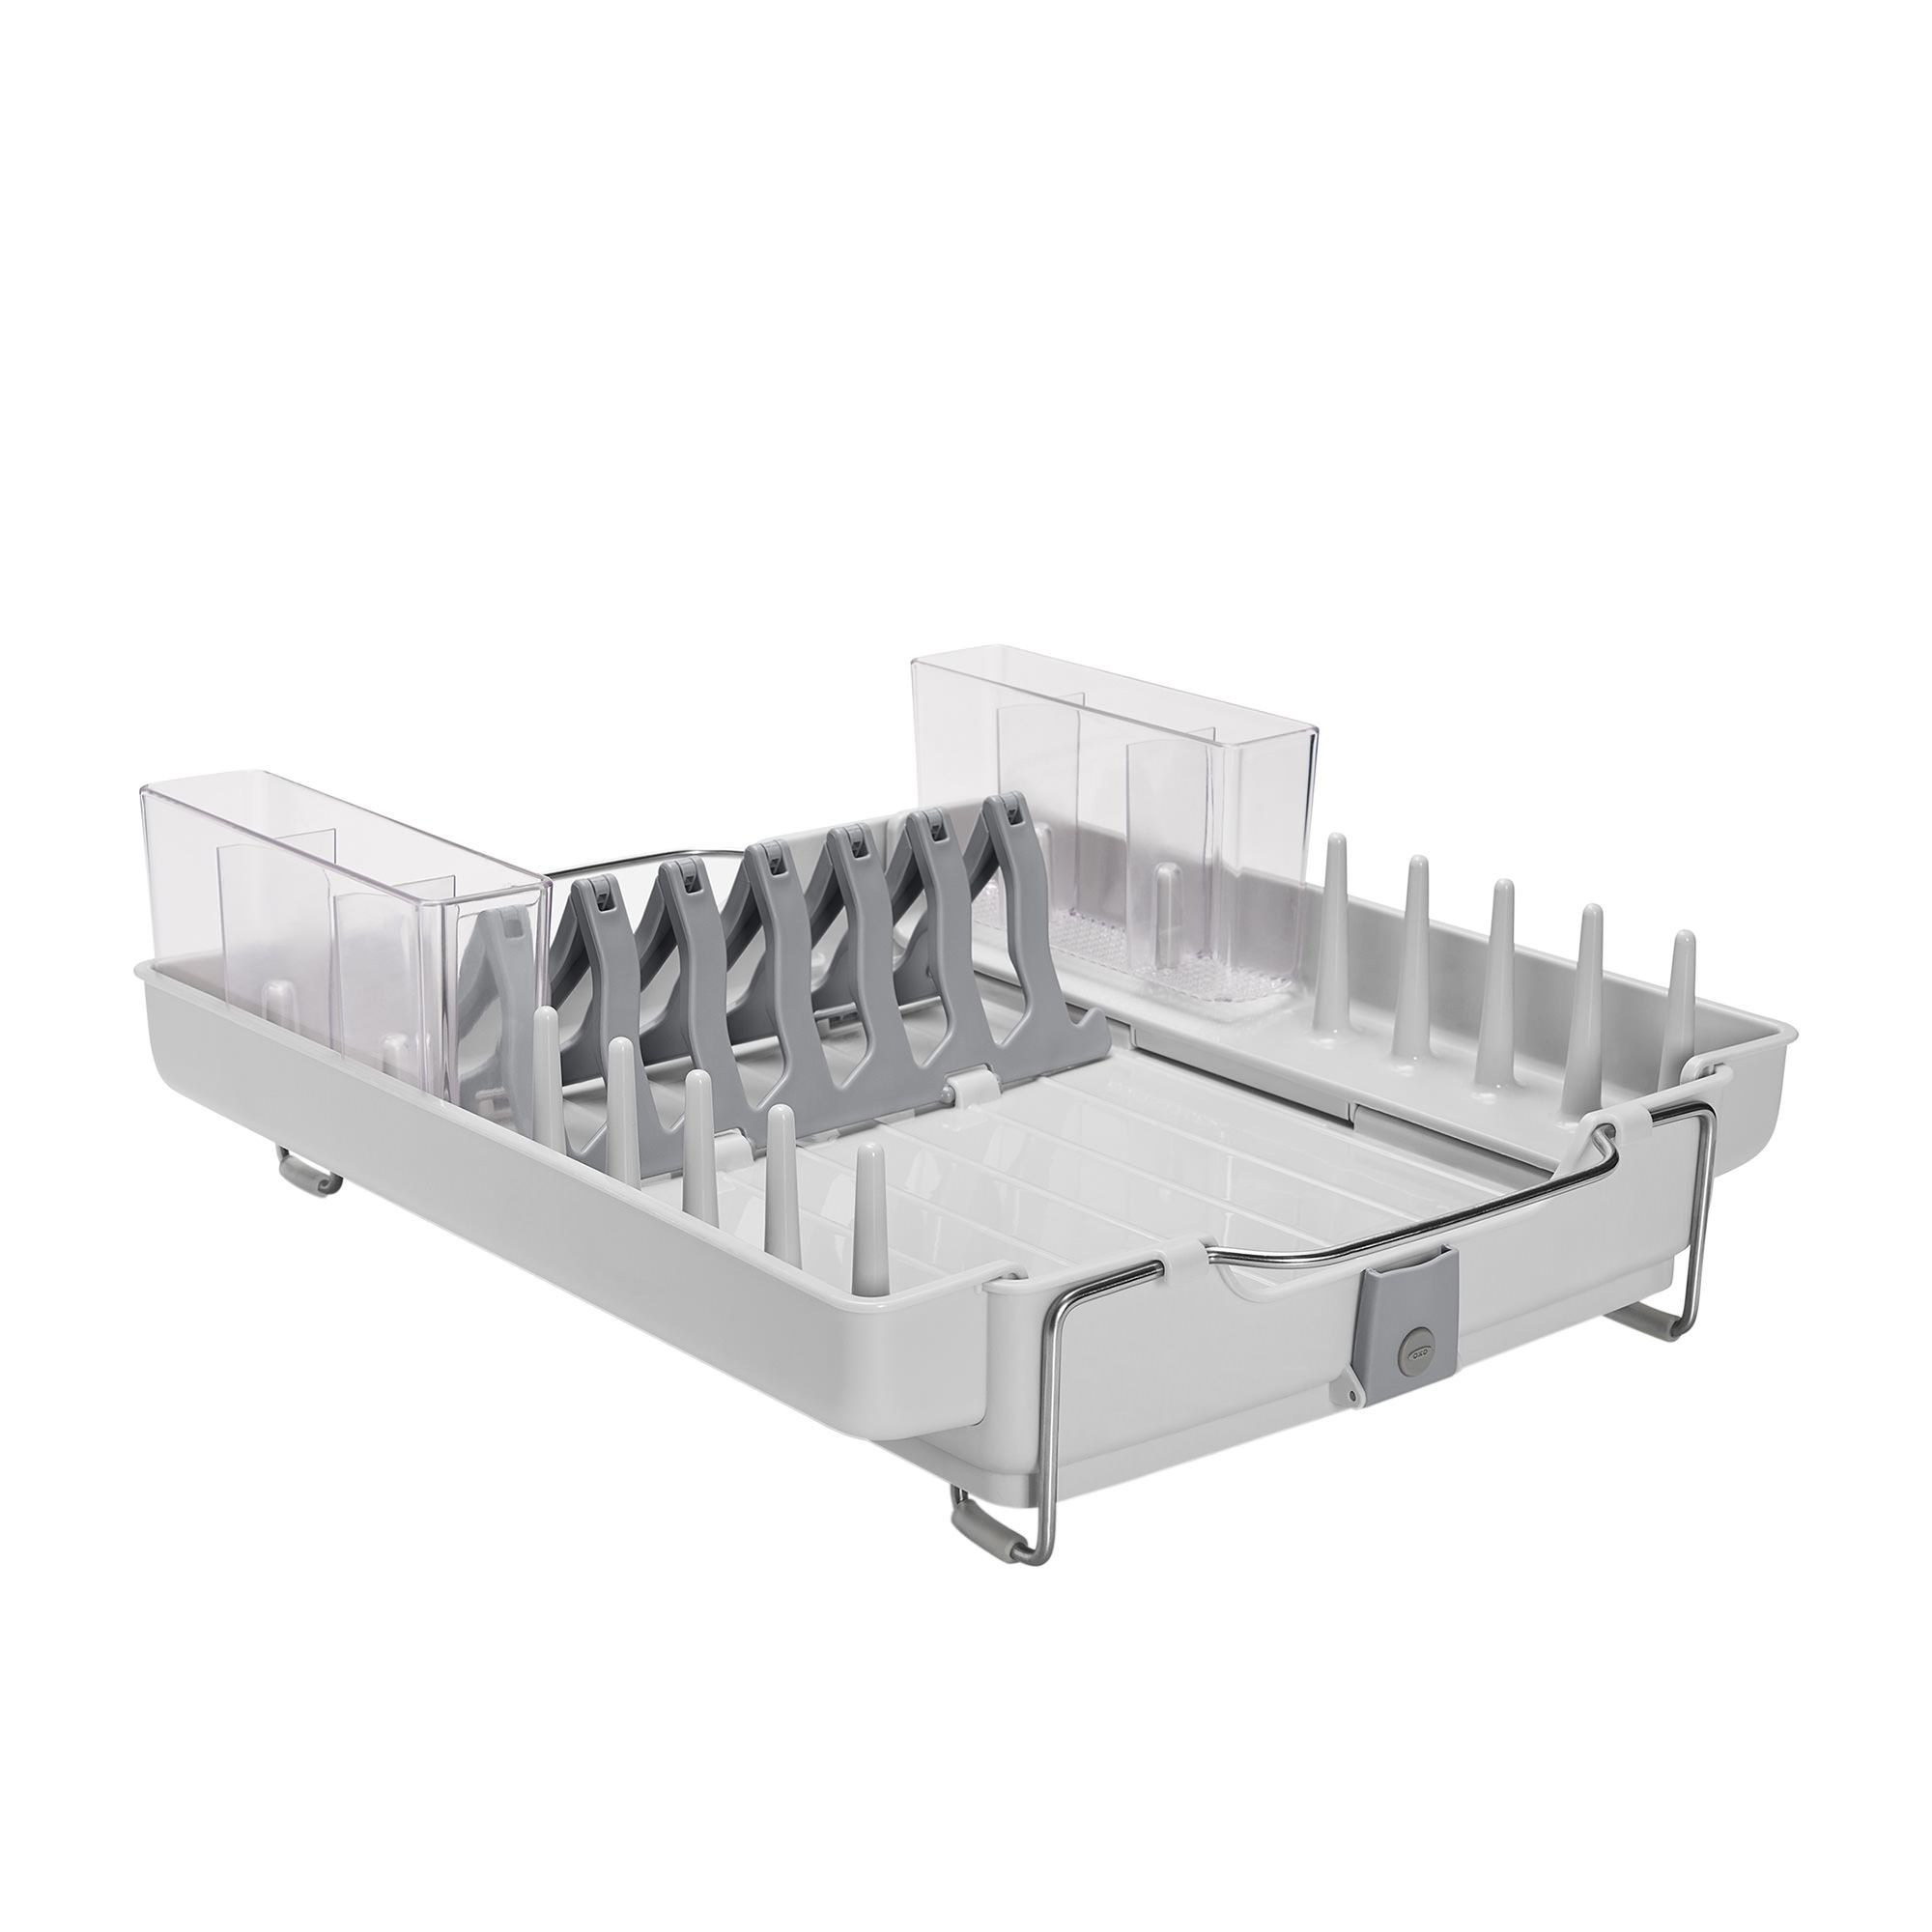 Oxo Good Grips Foldaway Dish Rack 48.3x39.4x16.5cm White